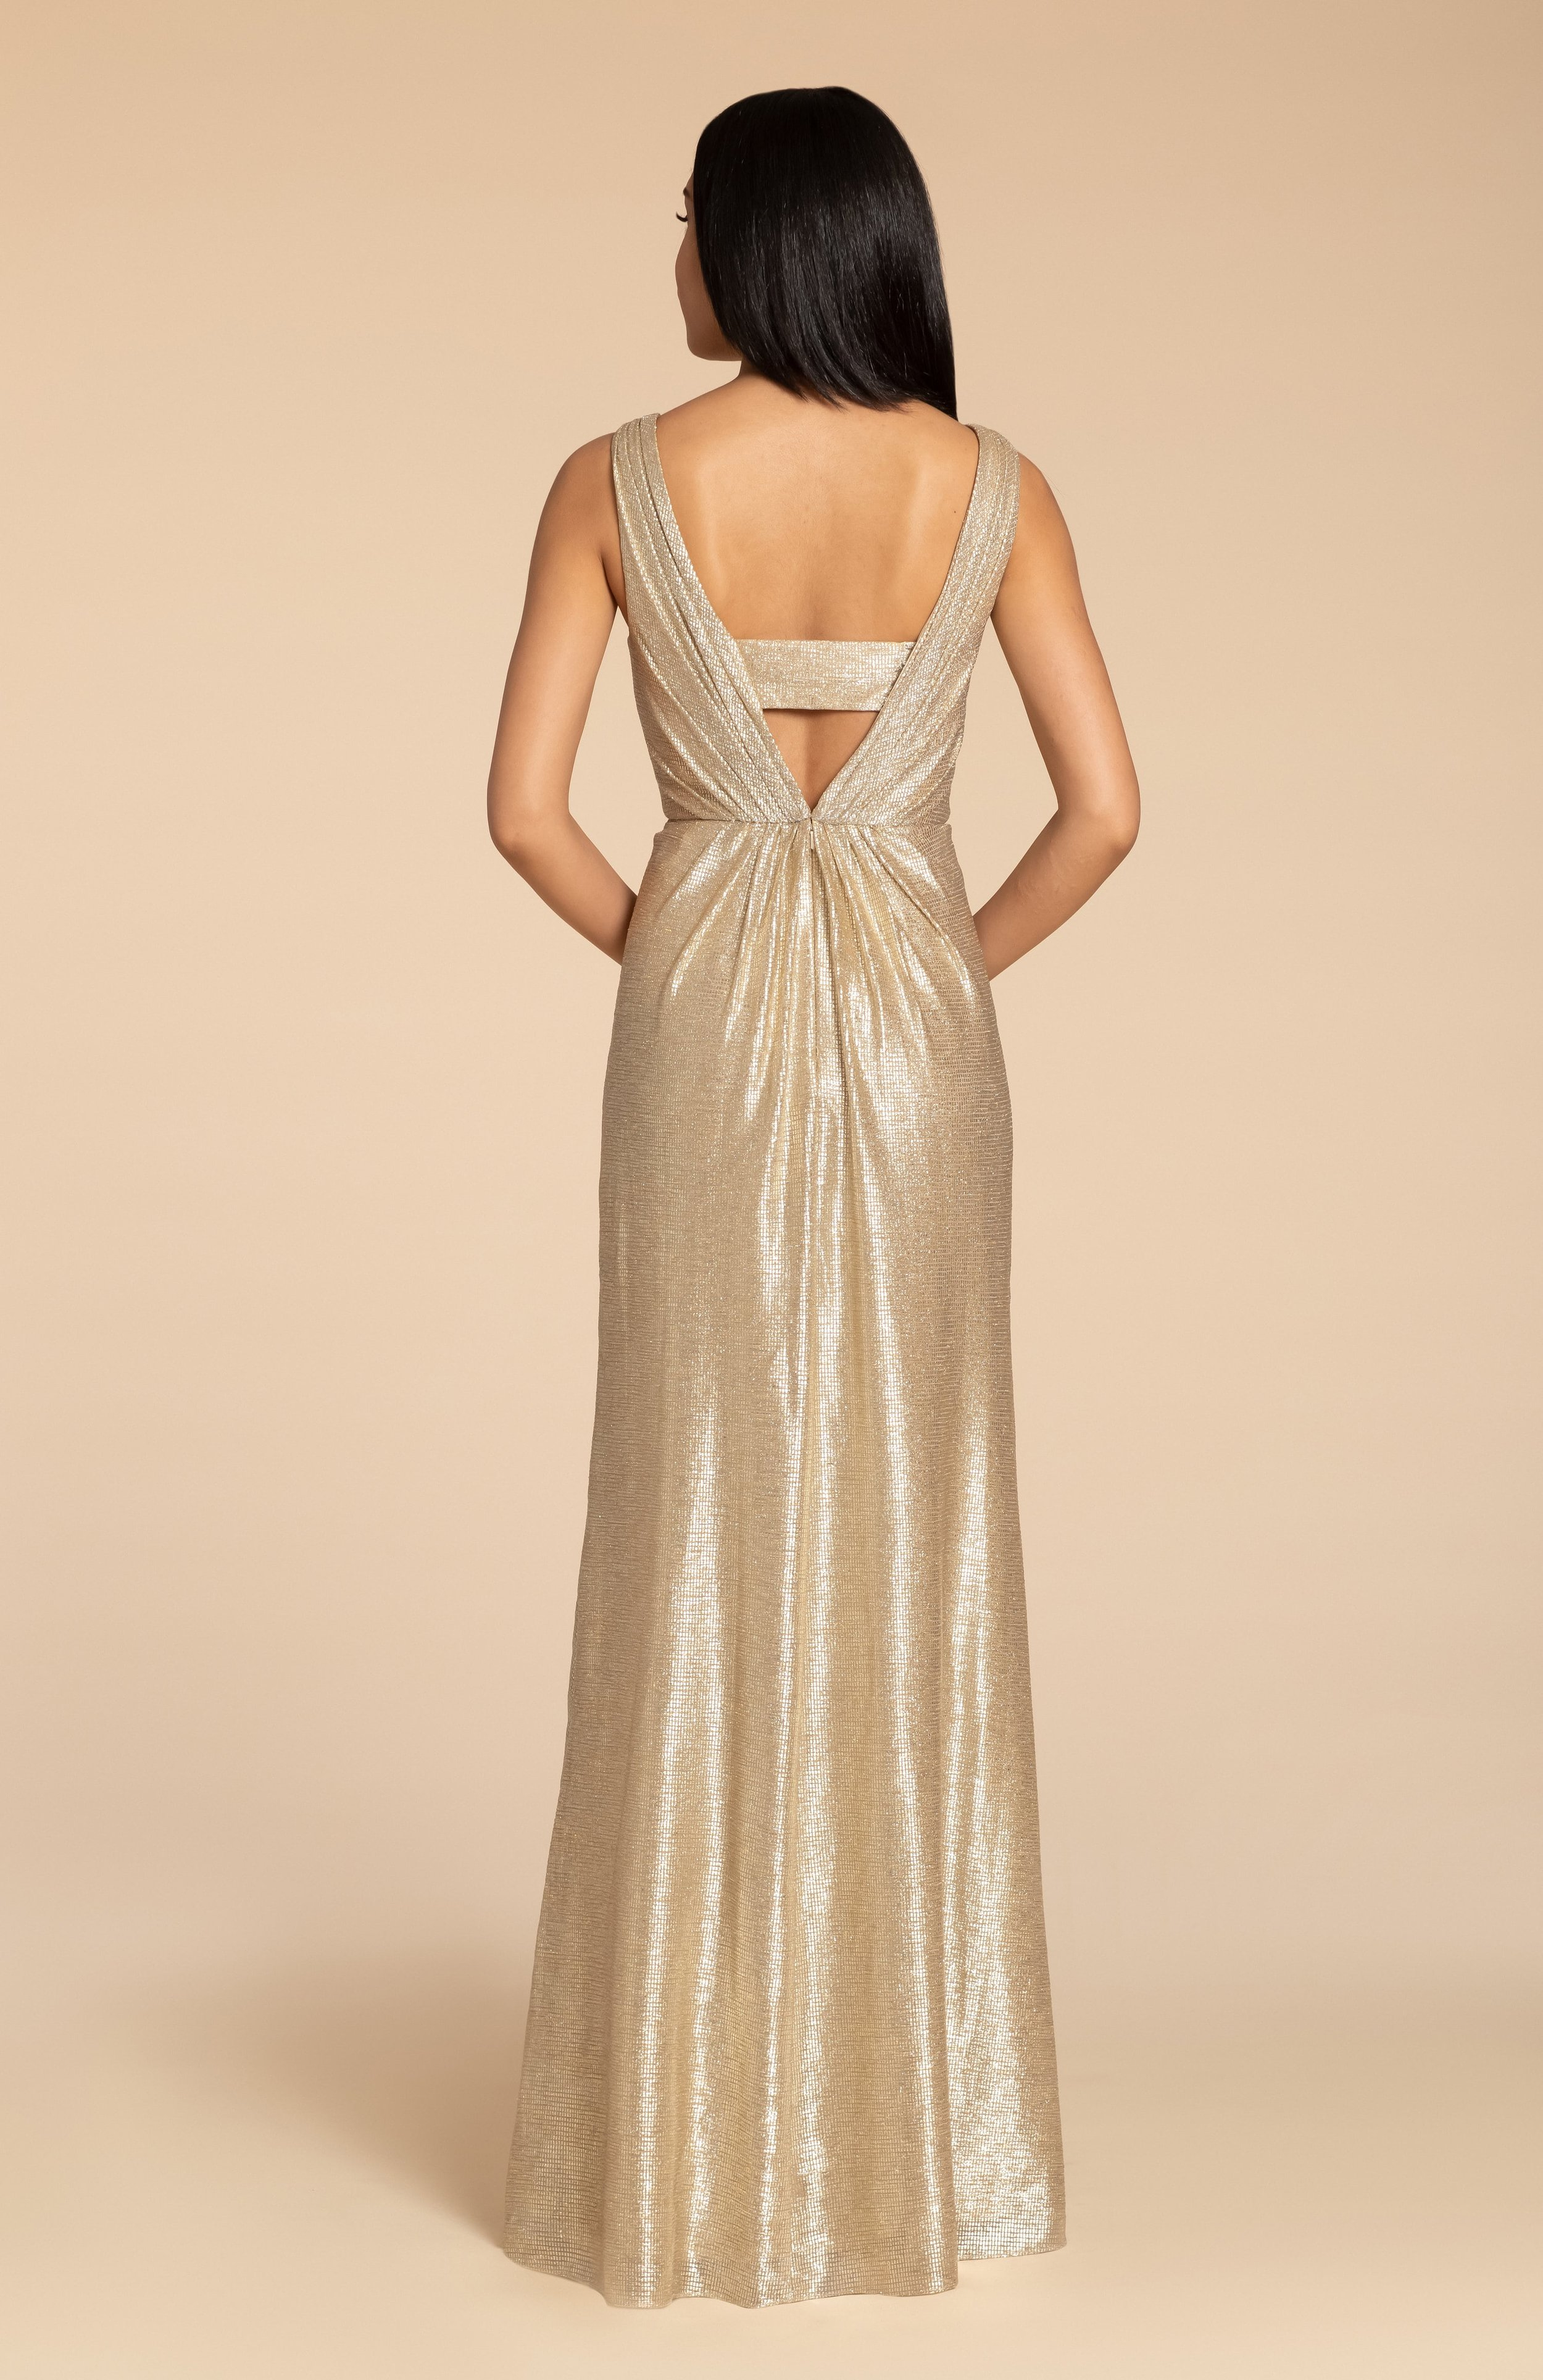 Back of style 5954 in Gold liquid metallic by Hayley Paige Bridesmaids